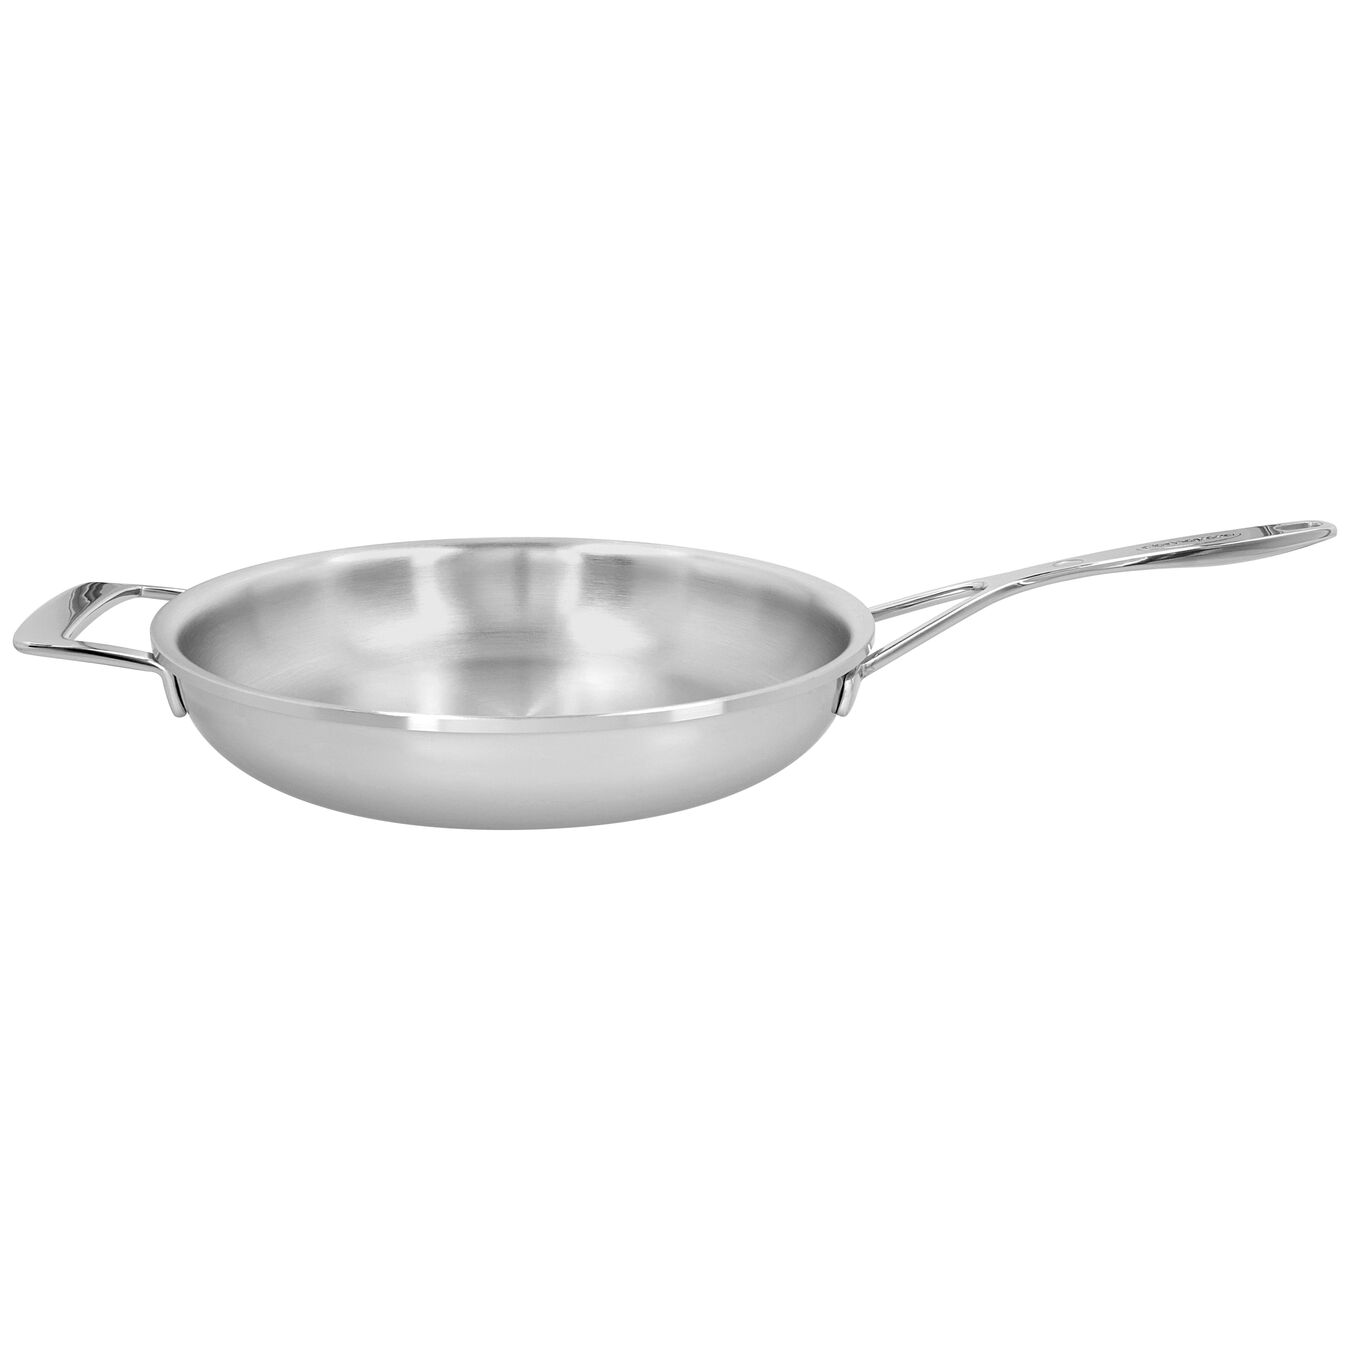 11-inch, 18/10 Stainless Steel, Non-stick, Frying pan,,large 1